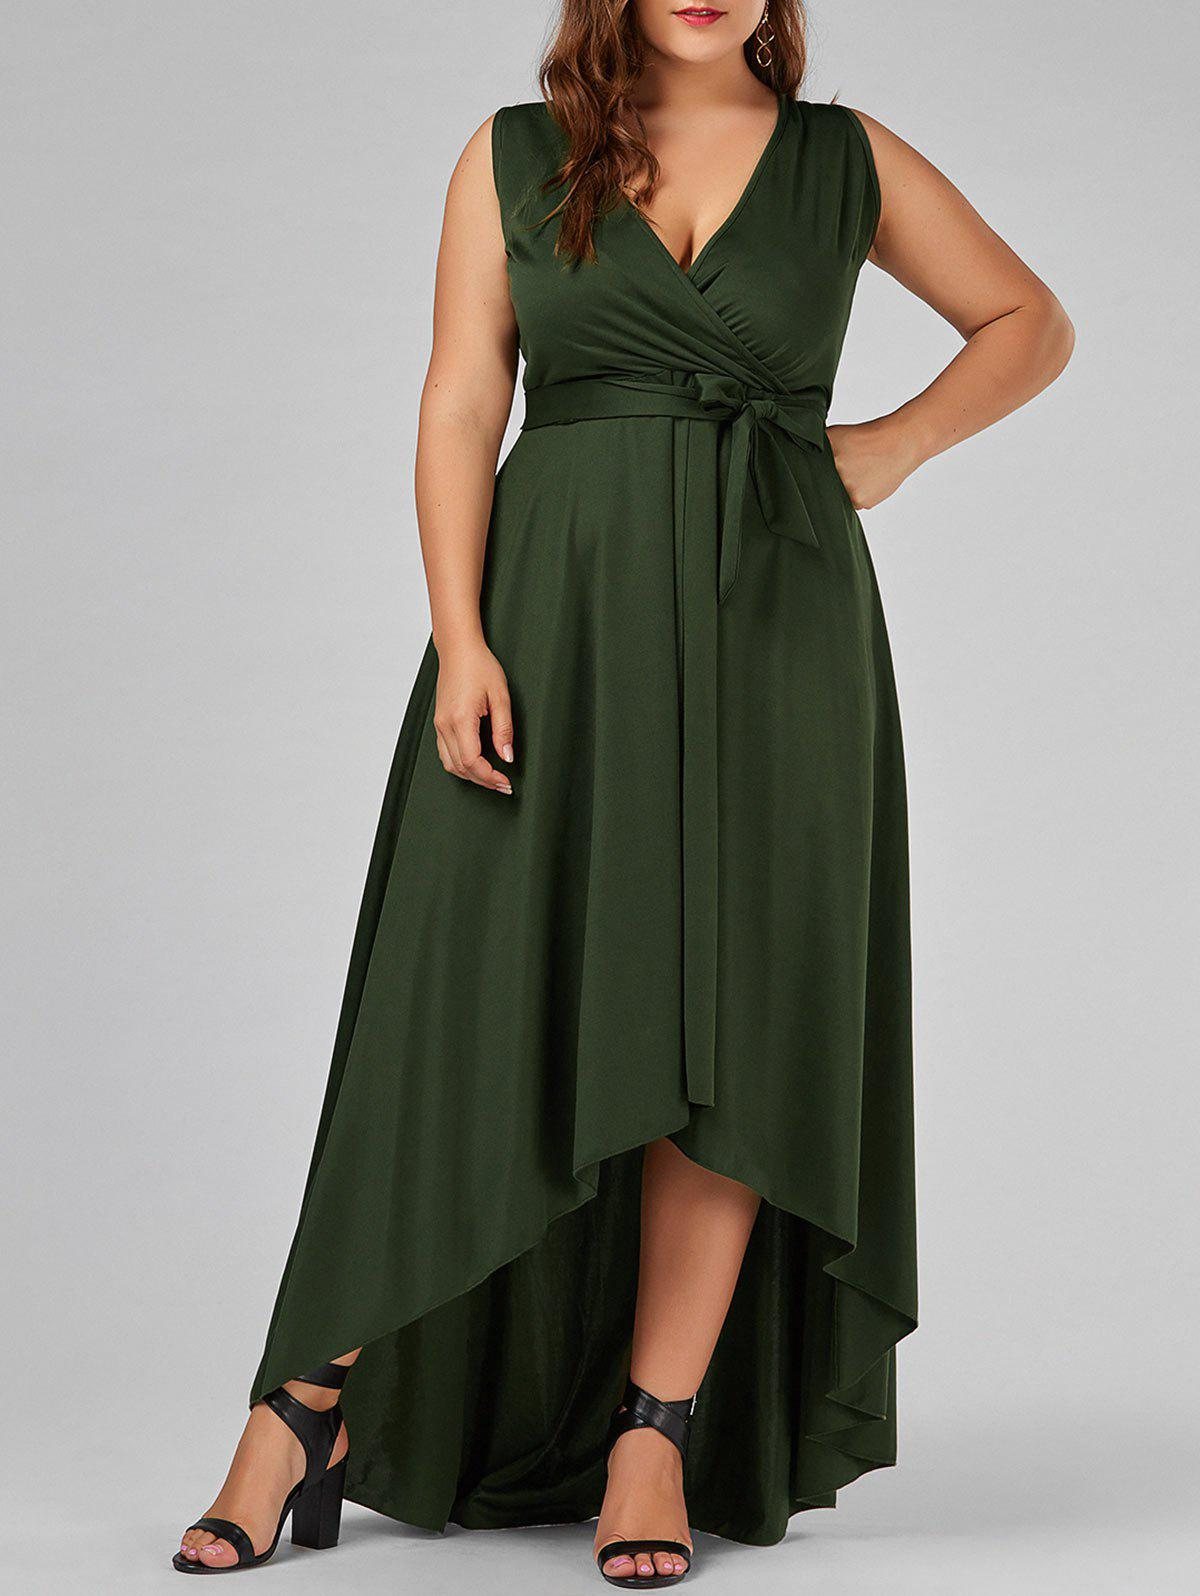 Plus Size Surplice Long High Low Formal DressWOMEN<br><br>Size: XL; Color: ARMY GREEN; Style: Brief; Material: Polyester; Silhouette: Asymmetrical; Dresses Length: Floor-Length; Neckline: V-Neck; Sleeve Length: Sleeveless; Pattern Type: Solid; With Belt: Yes; Season: Summer; Weight: 0.6200kg; Package Contents: 1 x Dress  1 x Belt;